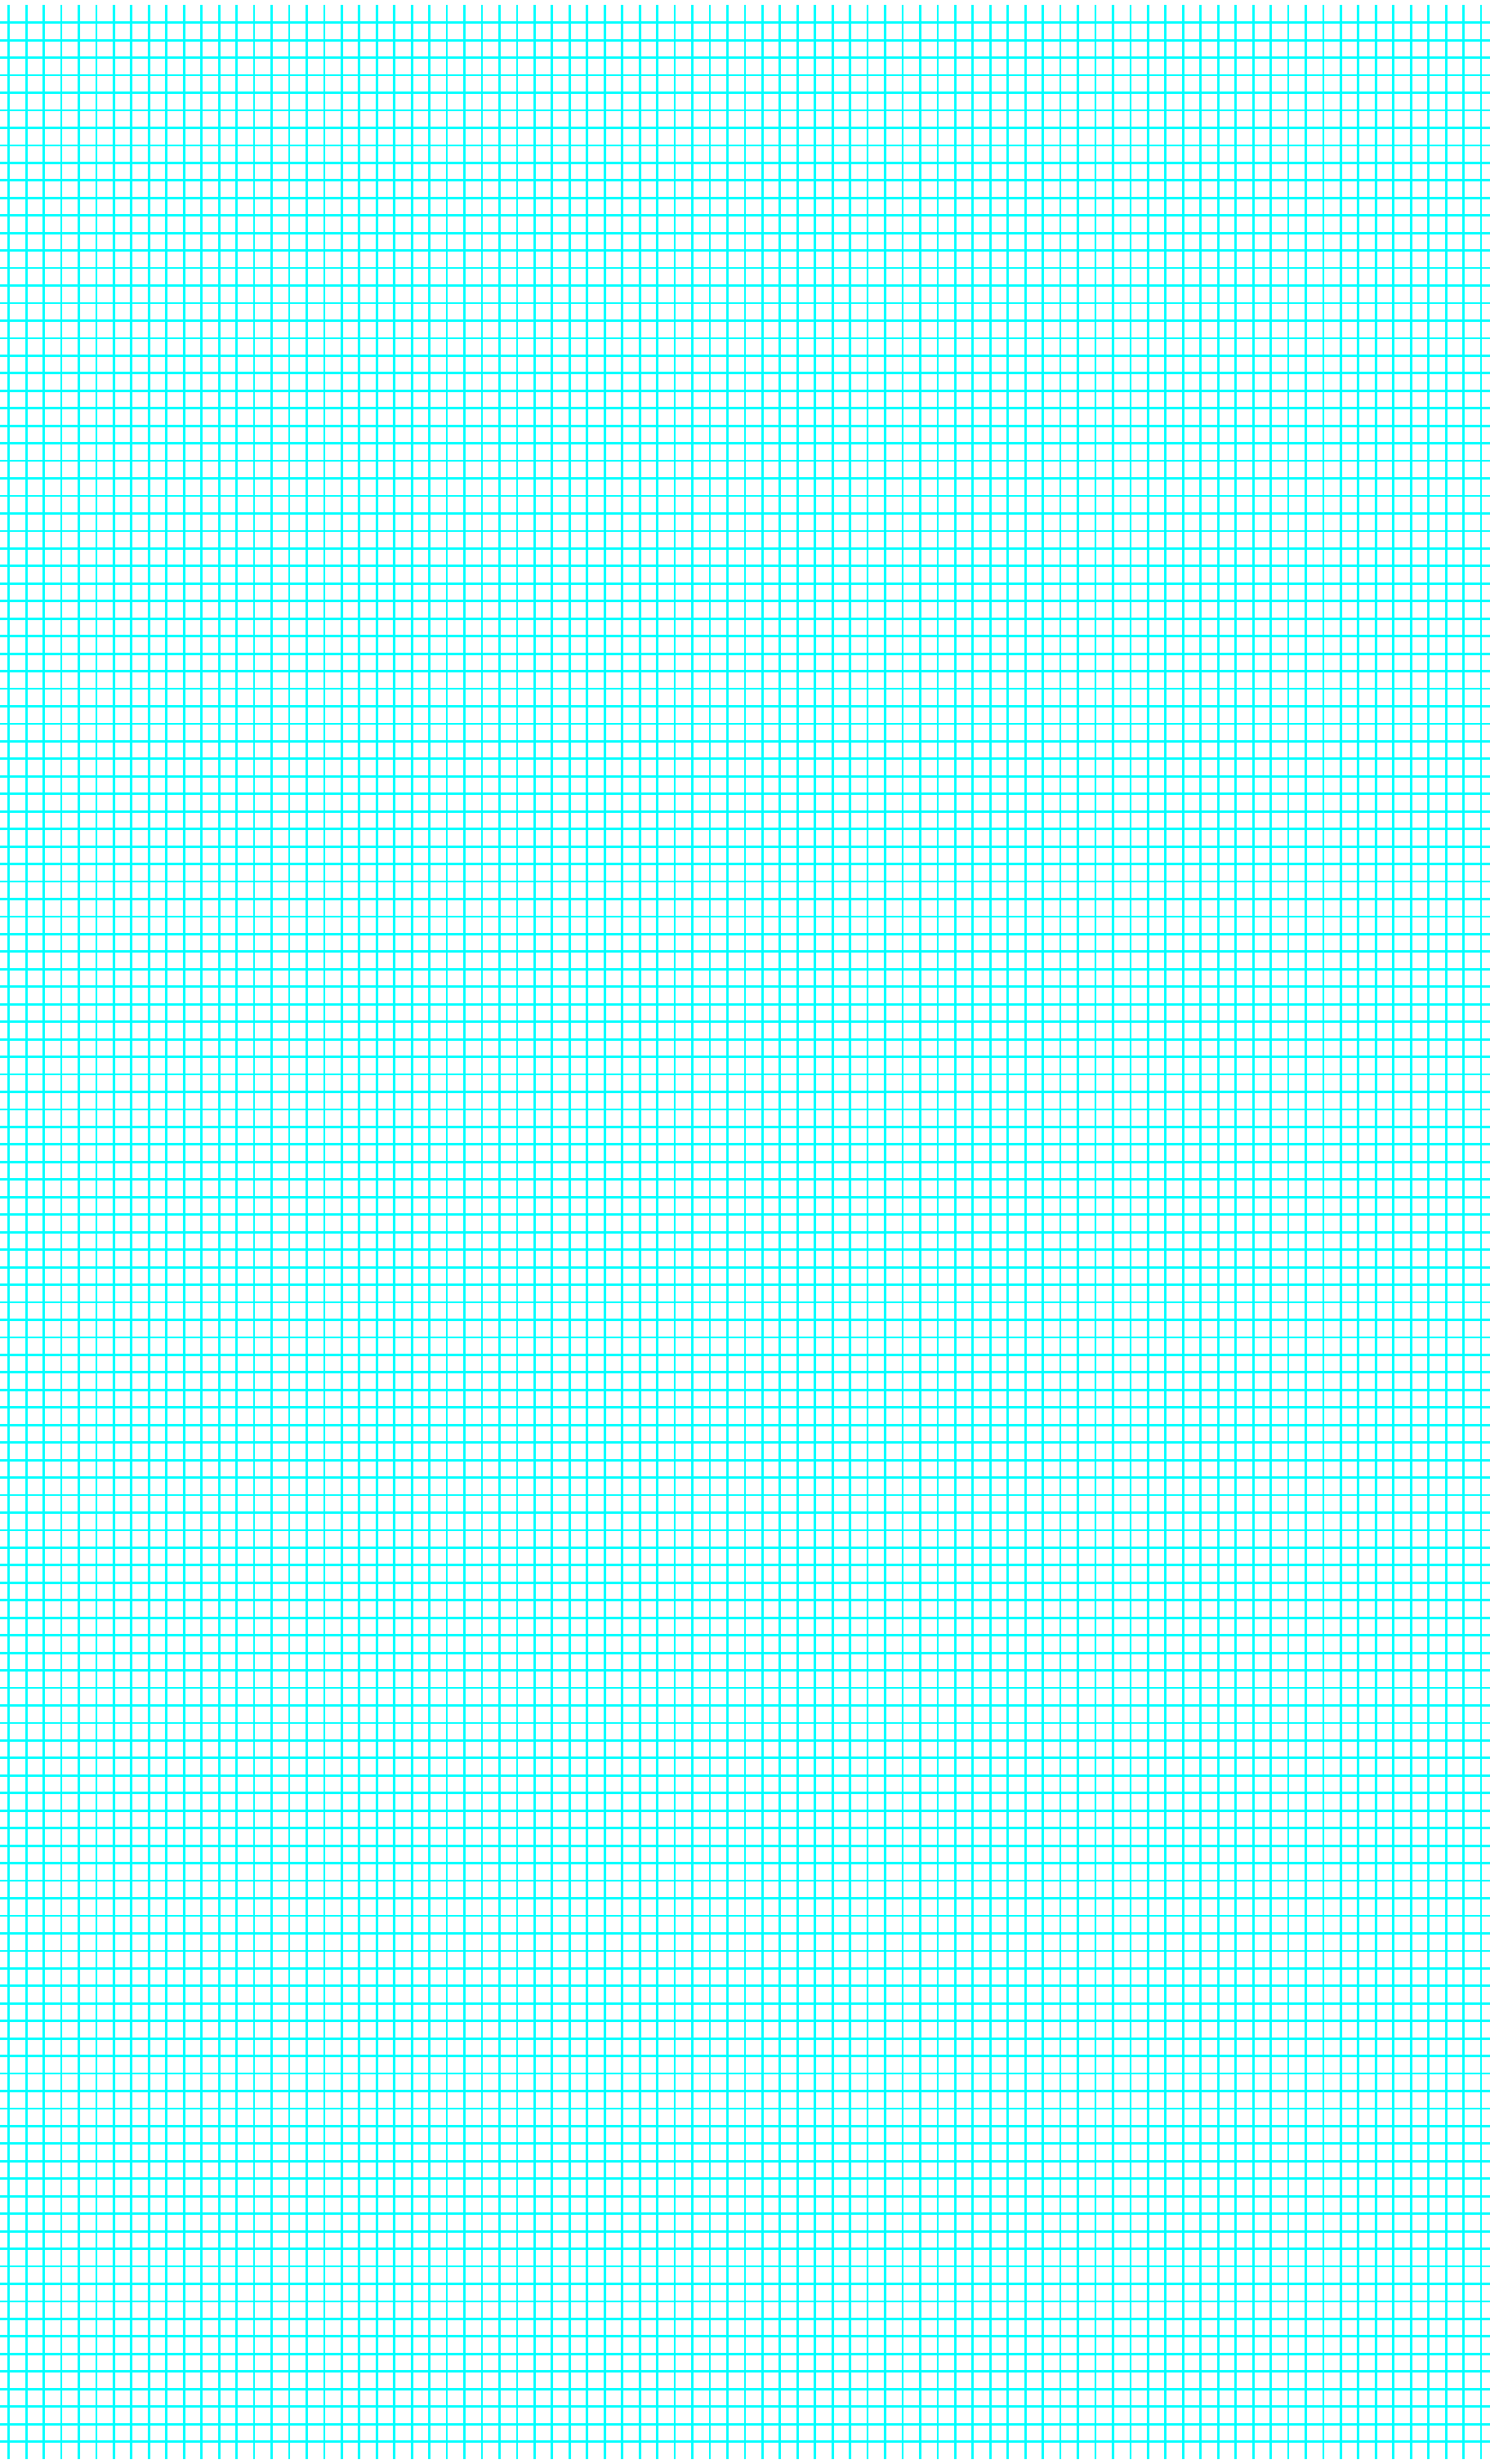 10 Lines Per Inch Graph Paper On Legal Sized Paper Free